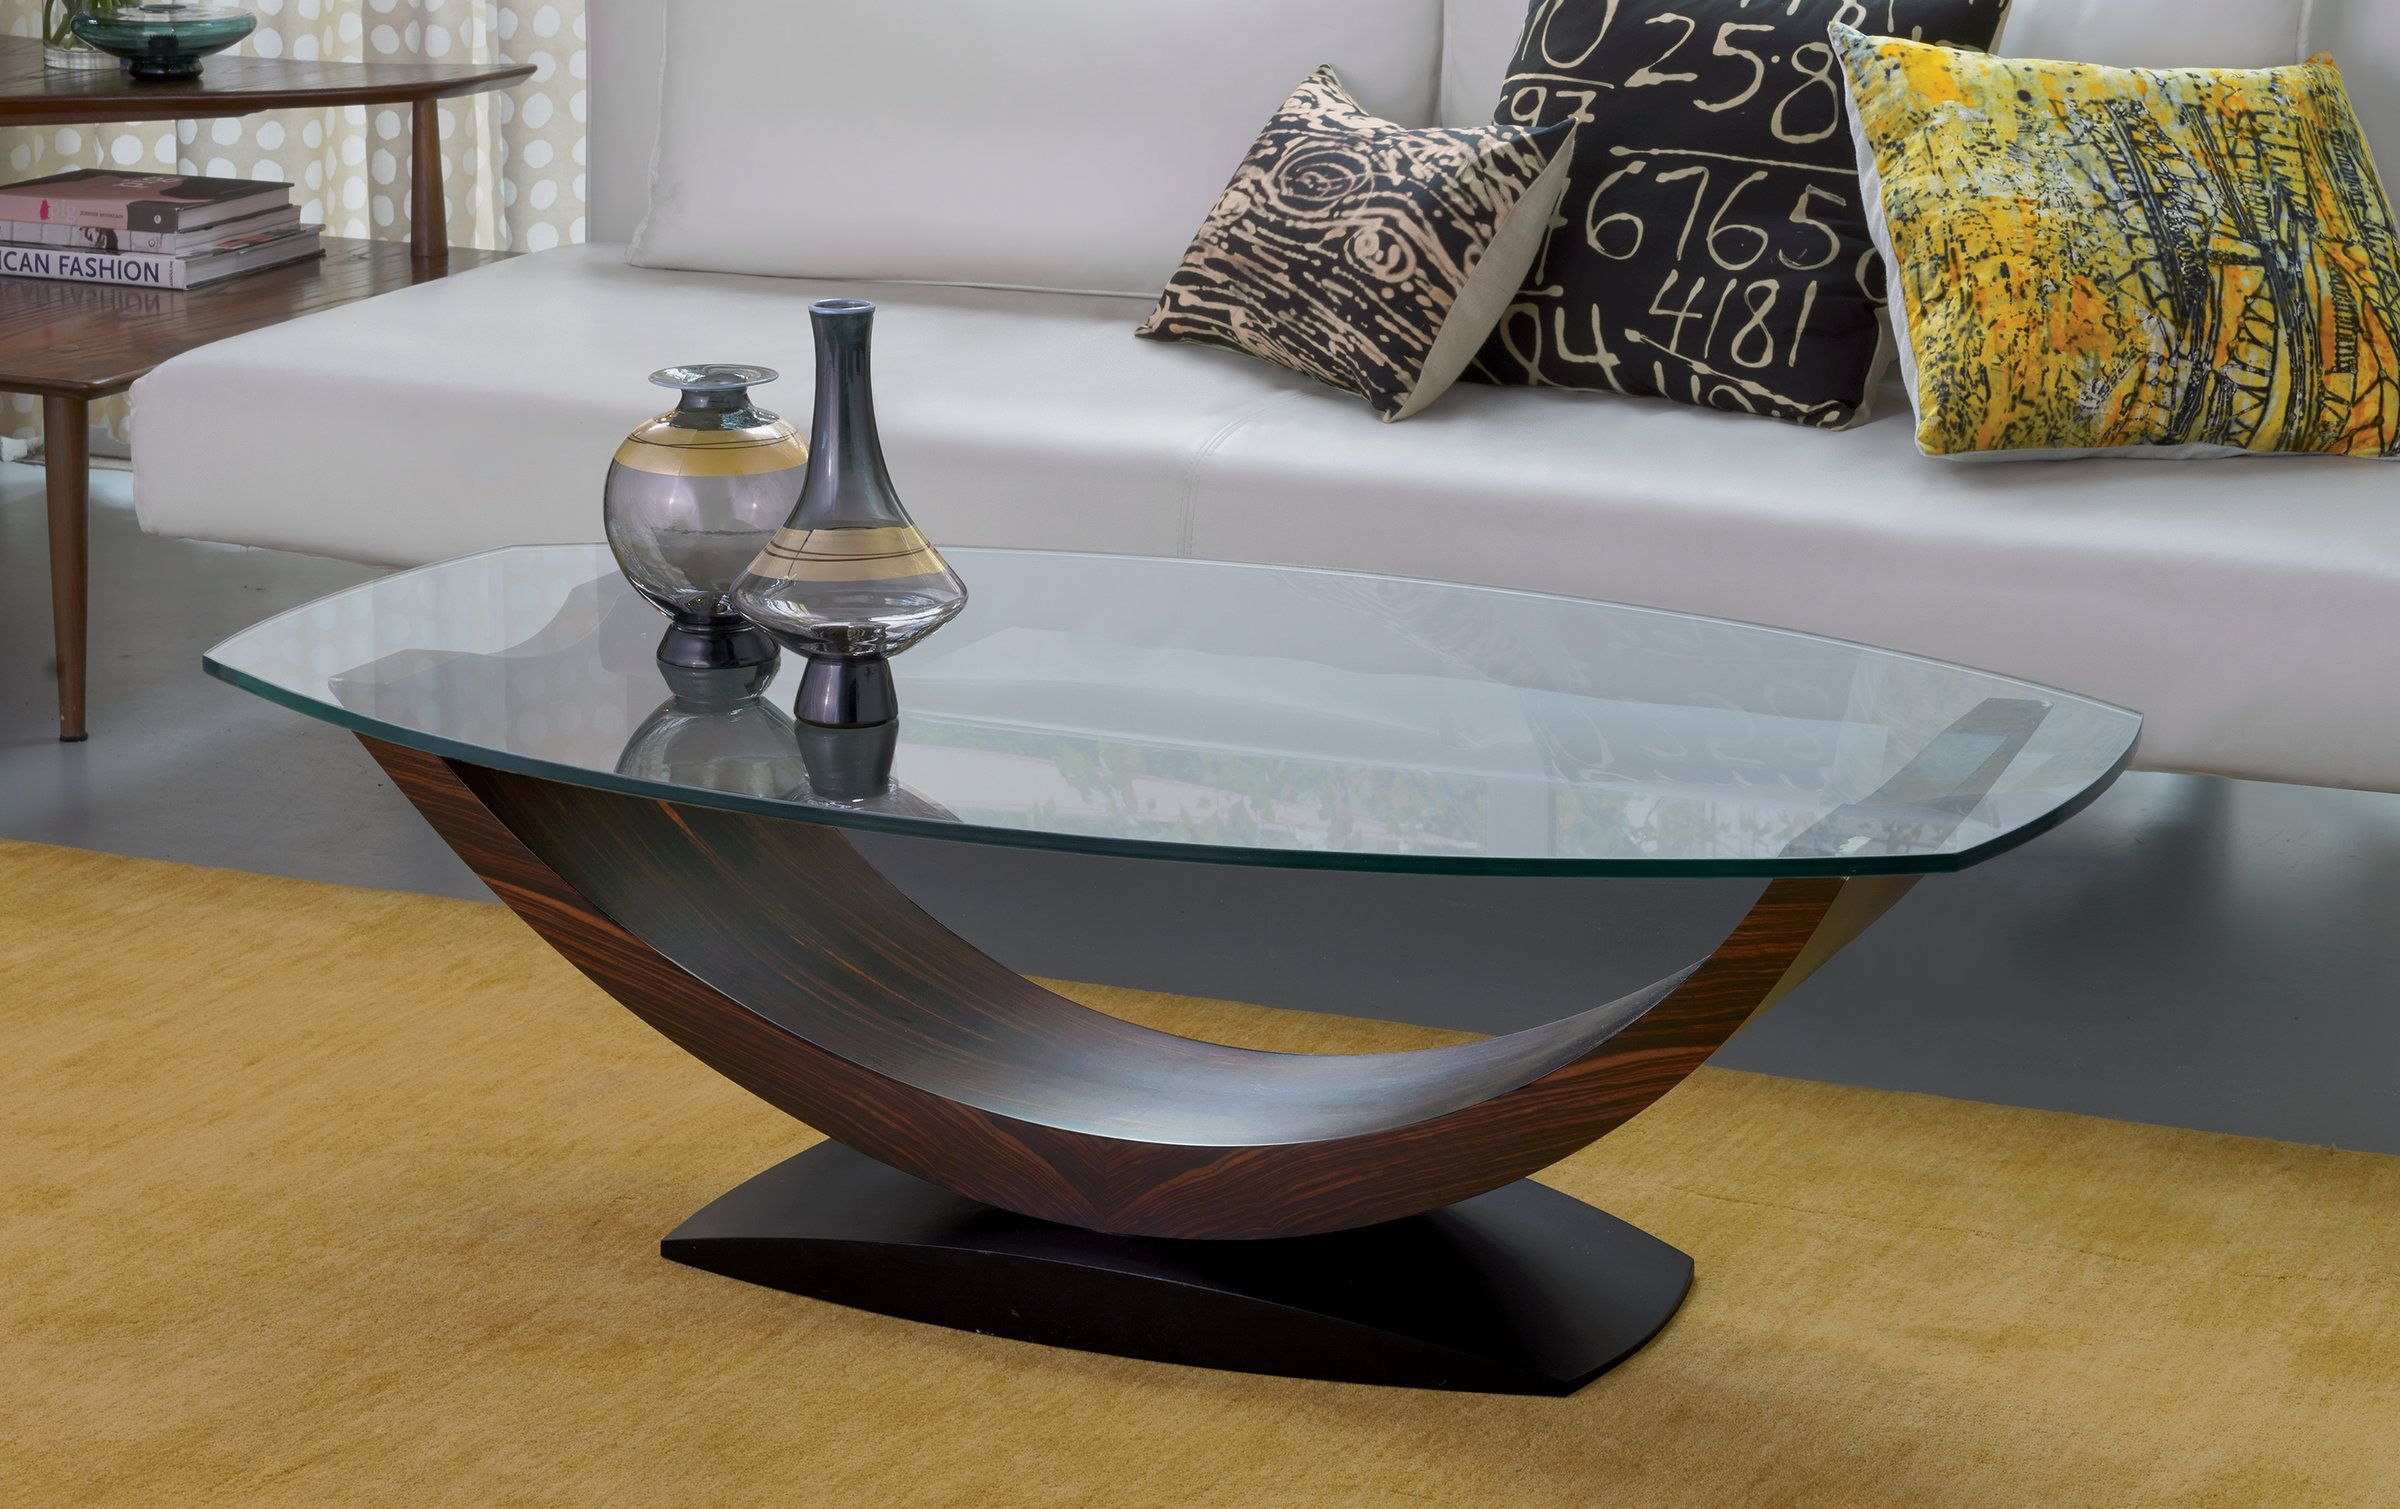 Arc Coffee Table By Enrico Konig Wood Coffee Table Artful Home In 2021 Coffee Table With Wheels Marble Top Coffee Table Black Glass Coffee Table [ 1509 x 2400 Pixel ]